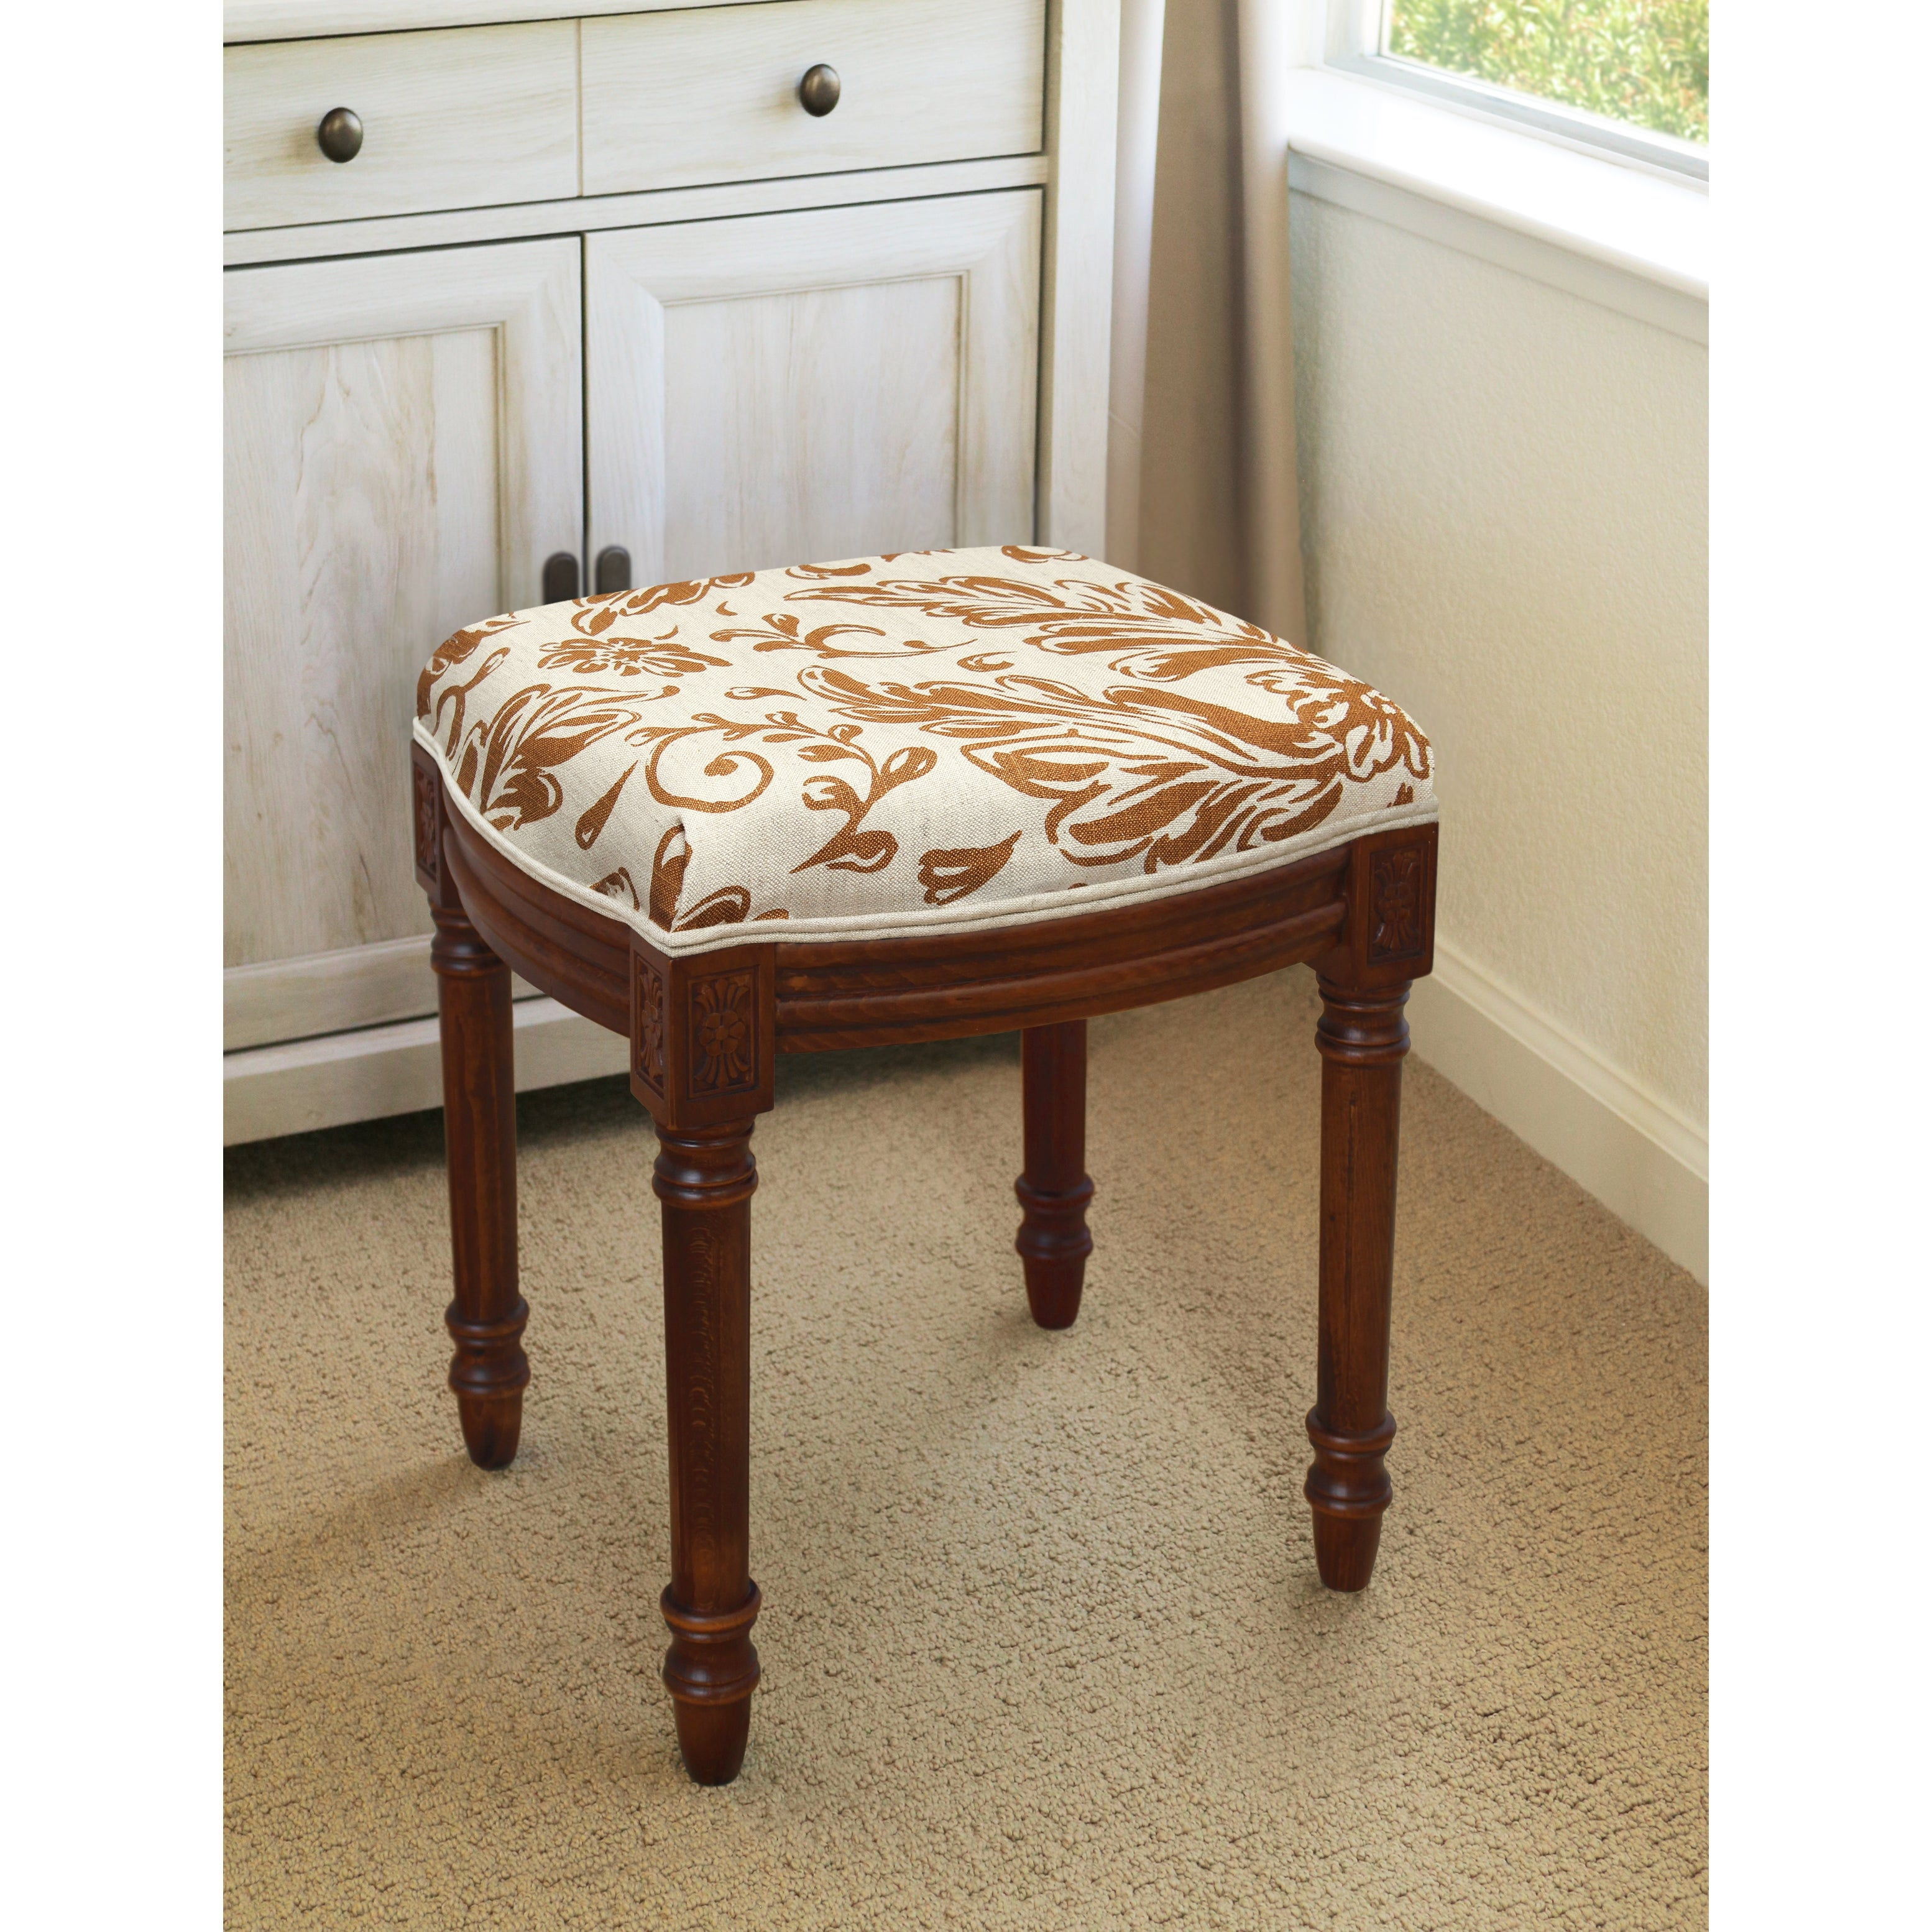 Caramel Tuscan Floral Vanity Stool With Wood Stained Finish Overstock 32811281